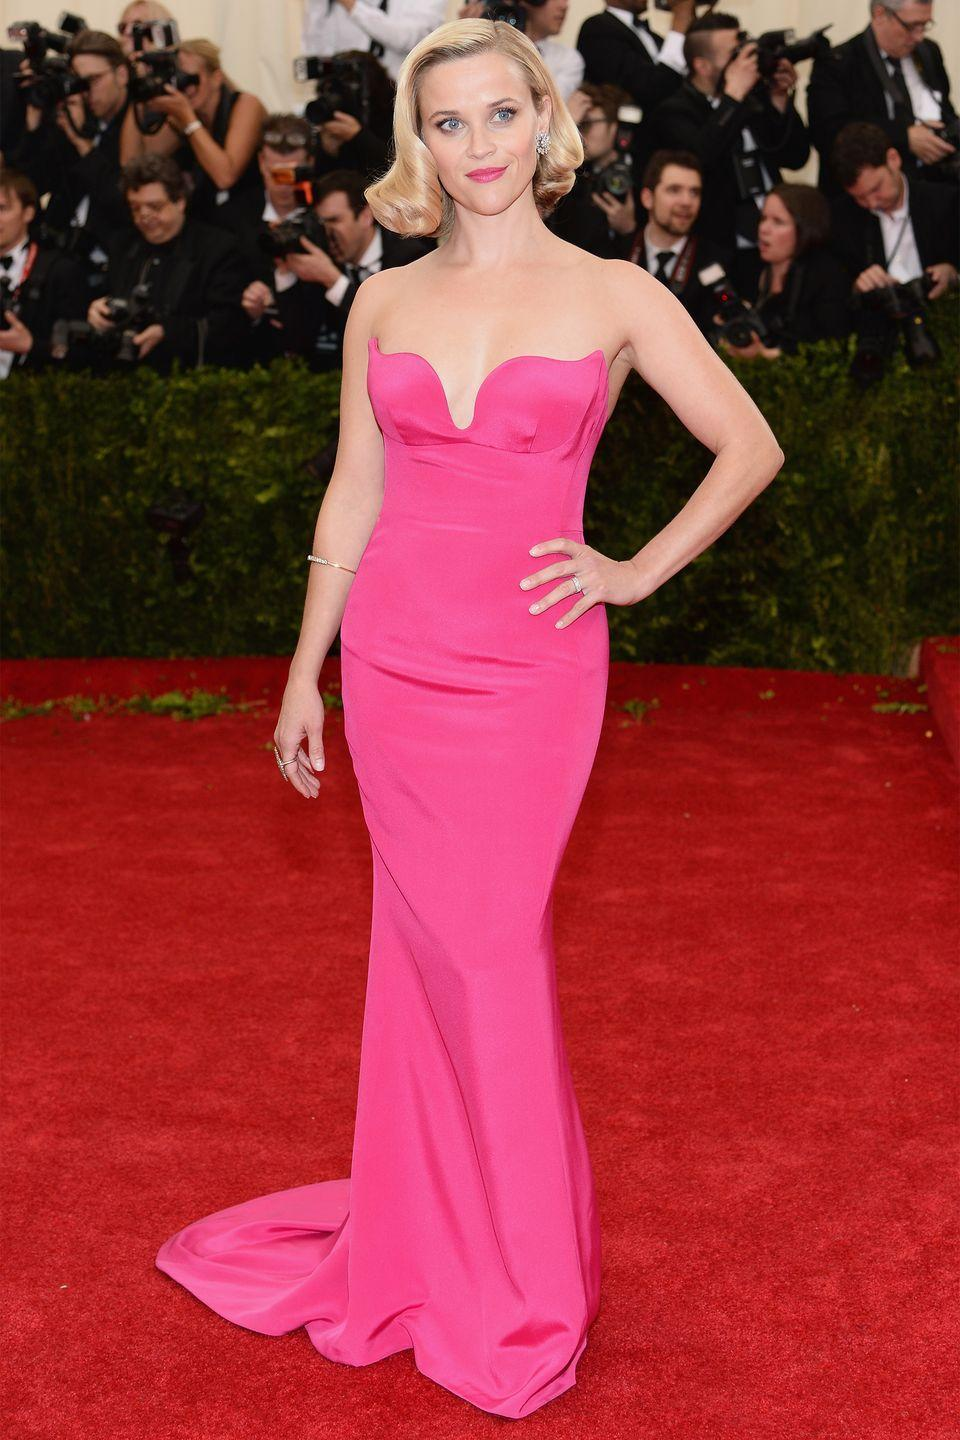 <p>Witherspoon brought the va-va-voom in a hot pink Stella McCartney gown at the annual Costume Institute Gala where she attended with the British designer. </p>